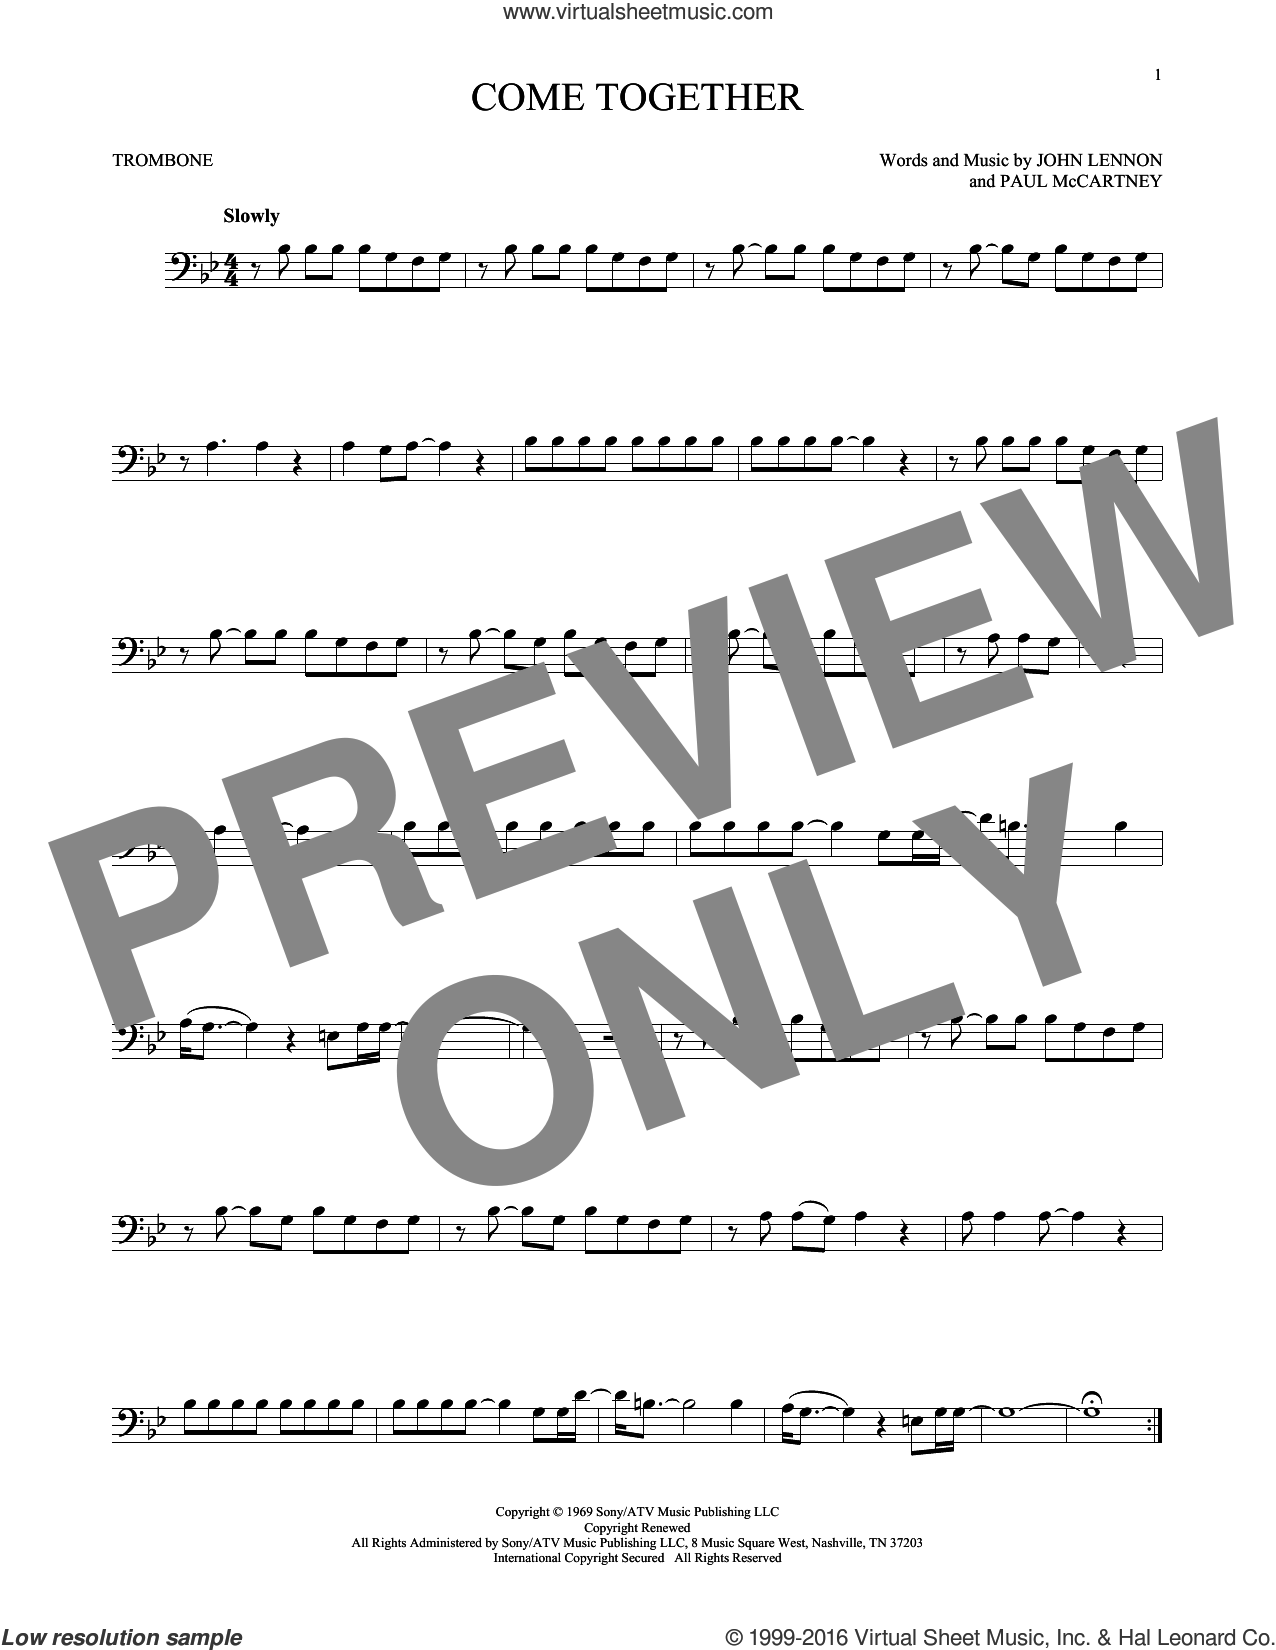 Come Together sheet music for trombone solo by The Beatles, John Lennon and Paul McCartney, intermediate skill level